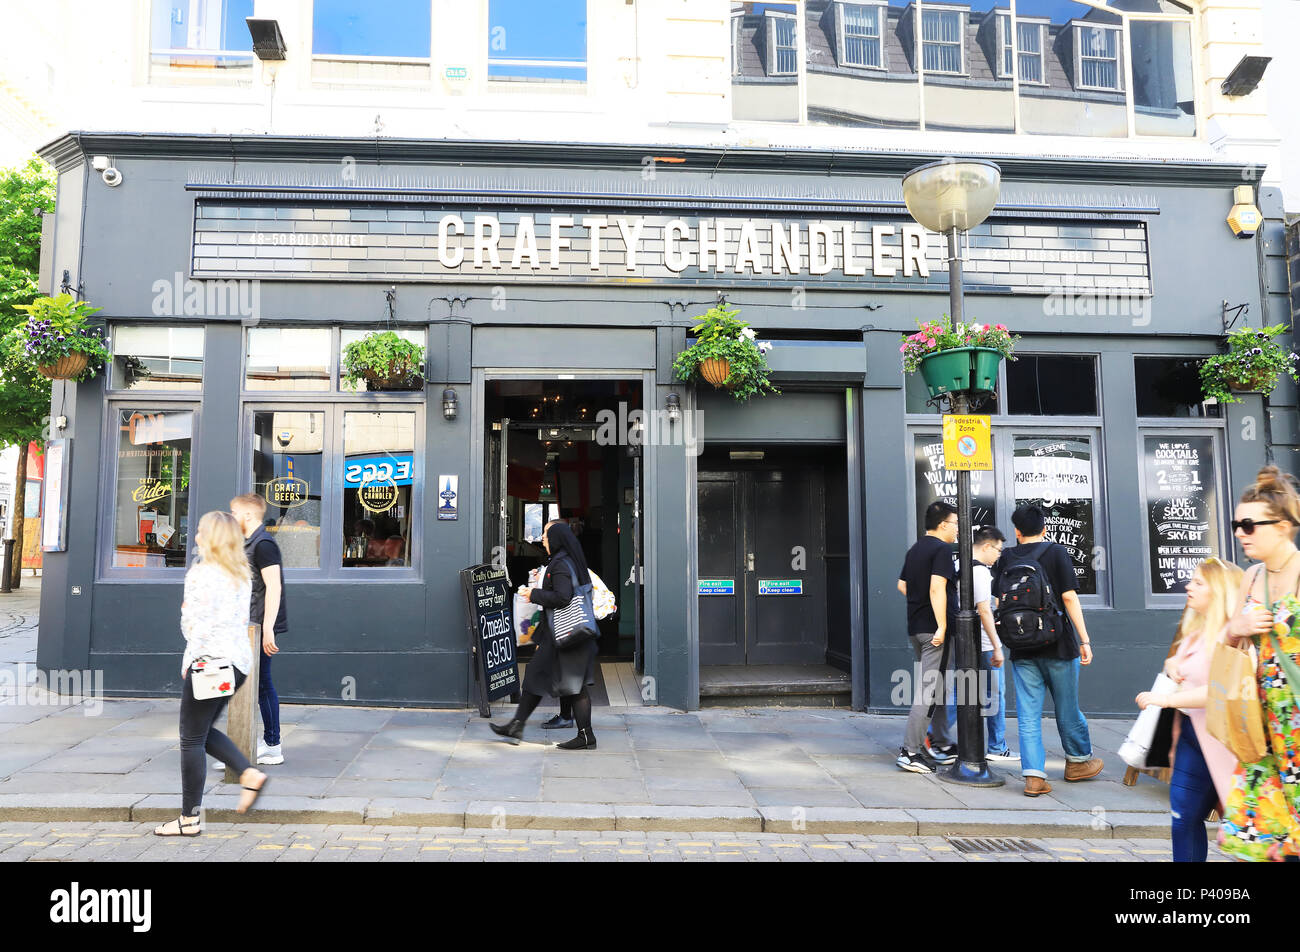 Craft Chandler pub on bohemian and fun Bold Street in Liverpool, full of independent cafes and shops, on Merseyside, in NW Englnad, UK - Stock Image